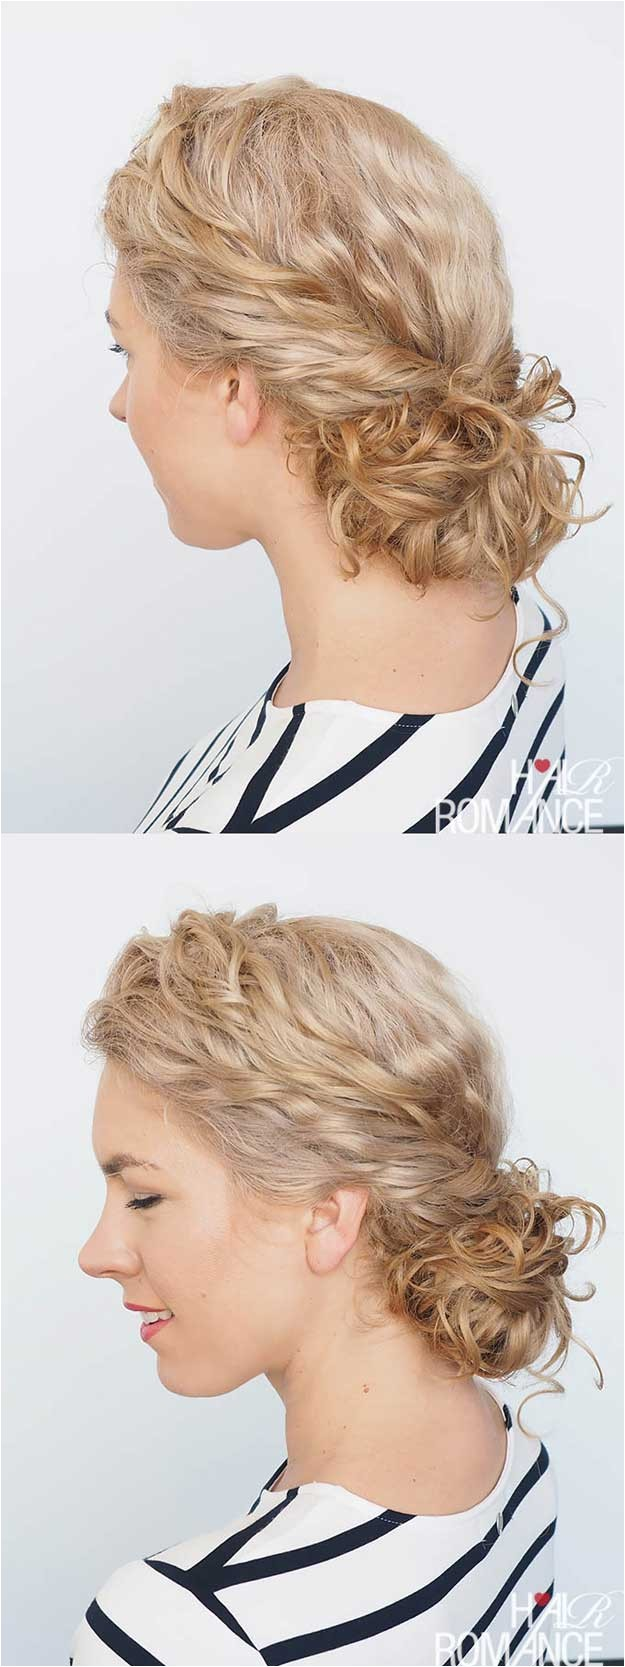 hairstyles five minutes